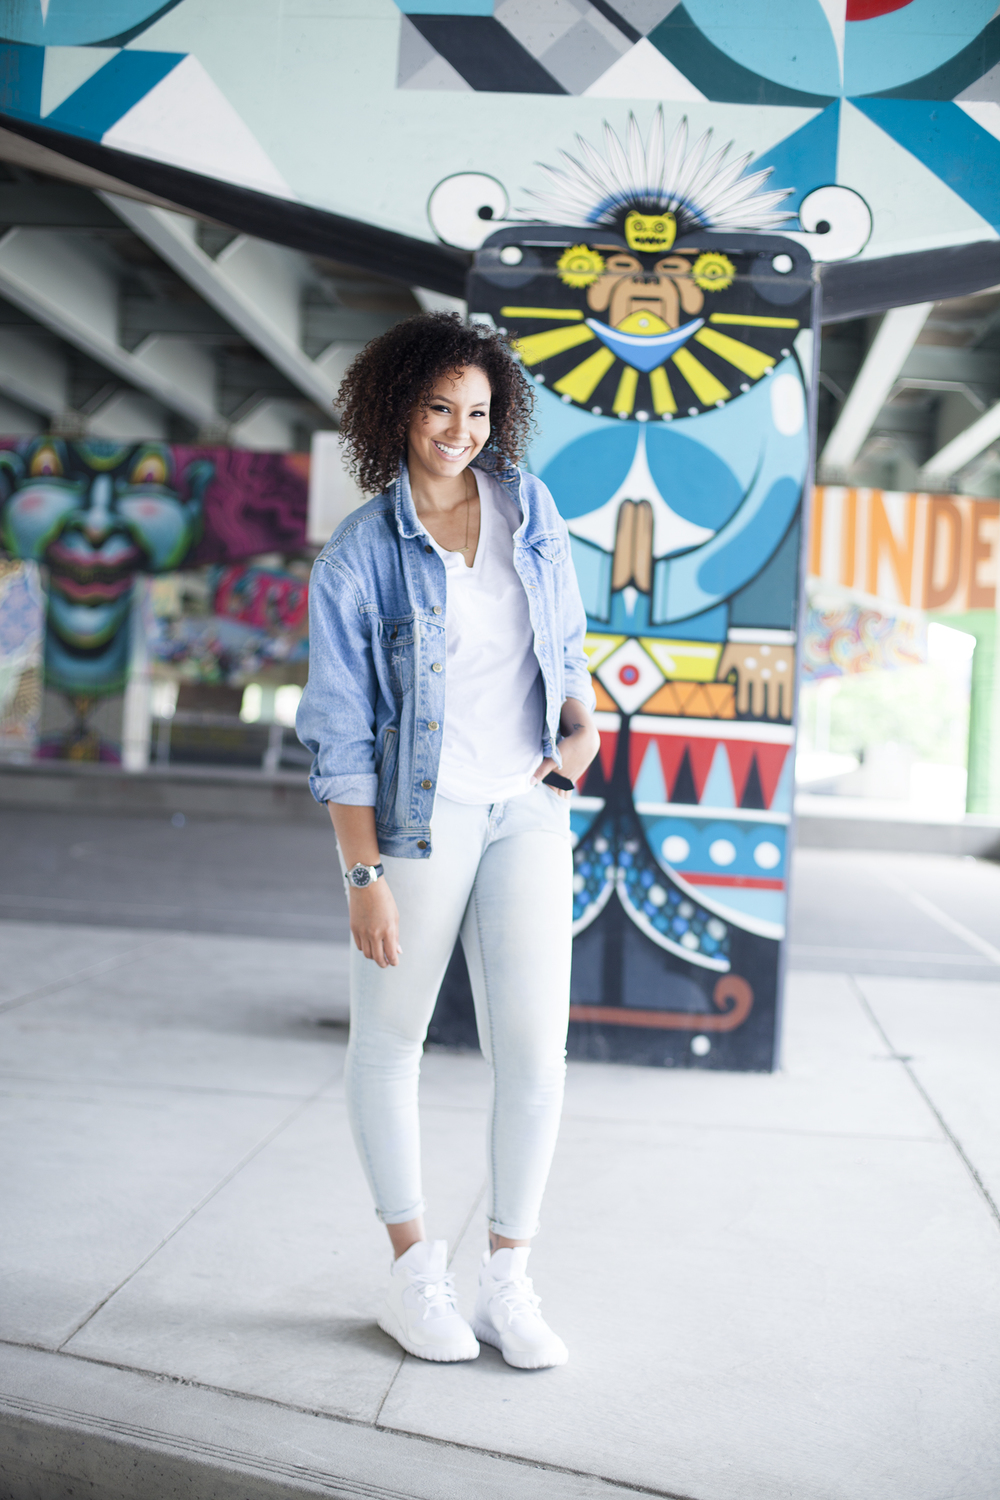 Just Ace it portraits Underpass Park Toronto Photography Karimah Gheddai